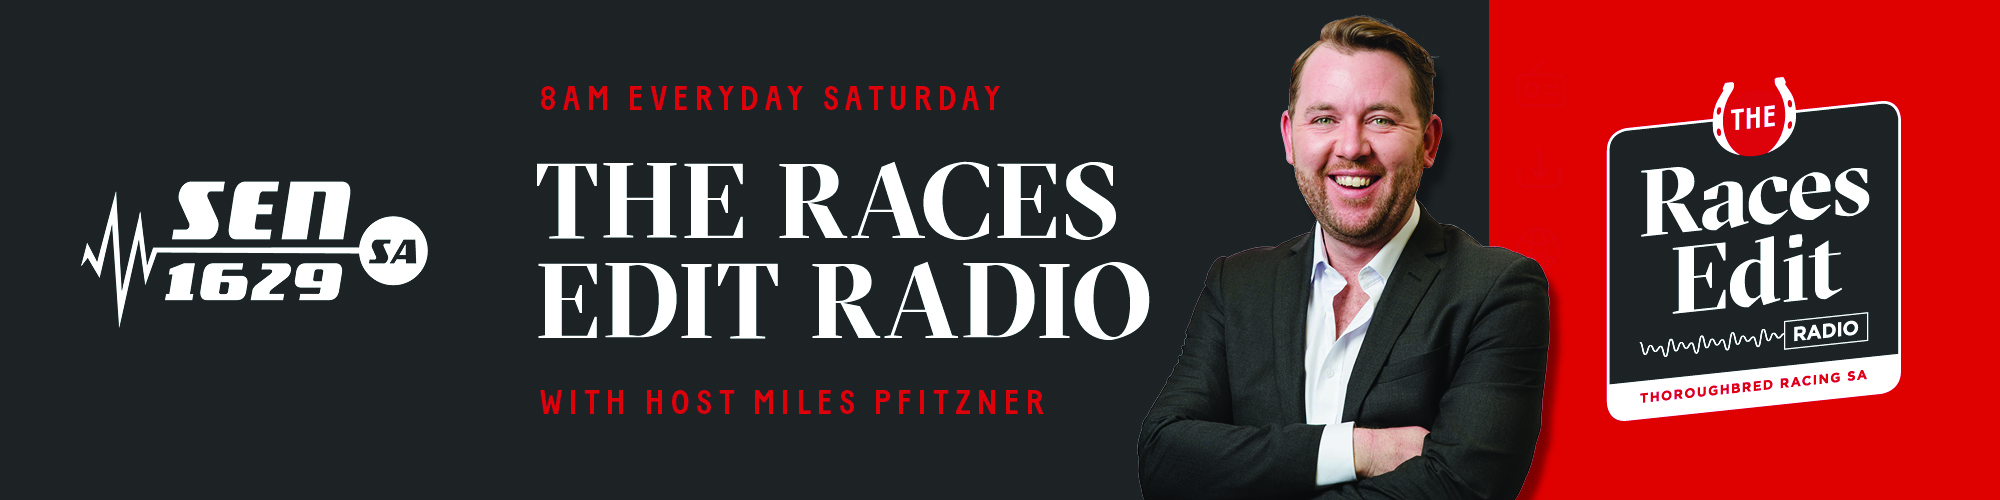 The Races Edit Radio Podcast 2000x500 V2